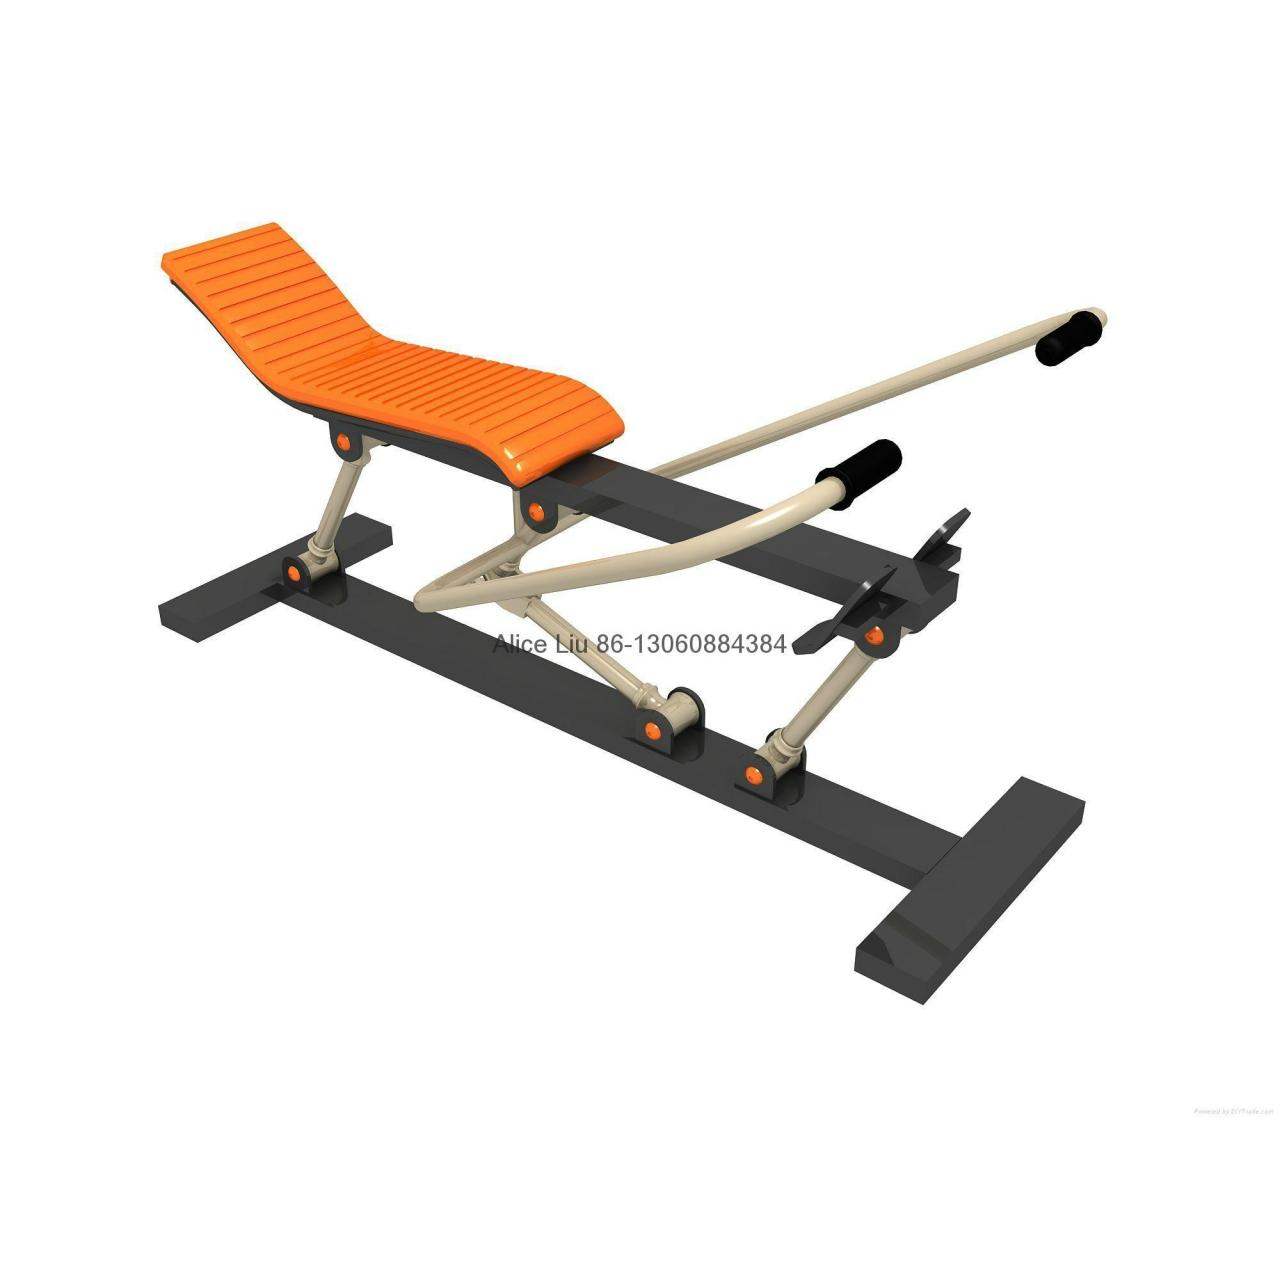 Rowing machine outdoor body-building equipment Manufactures